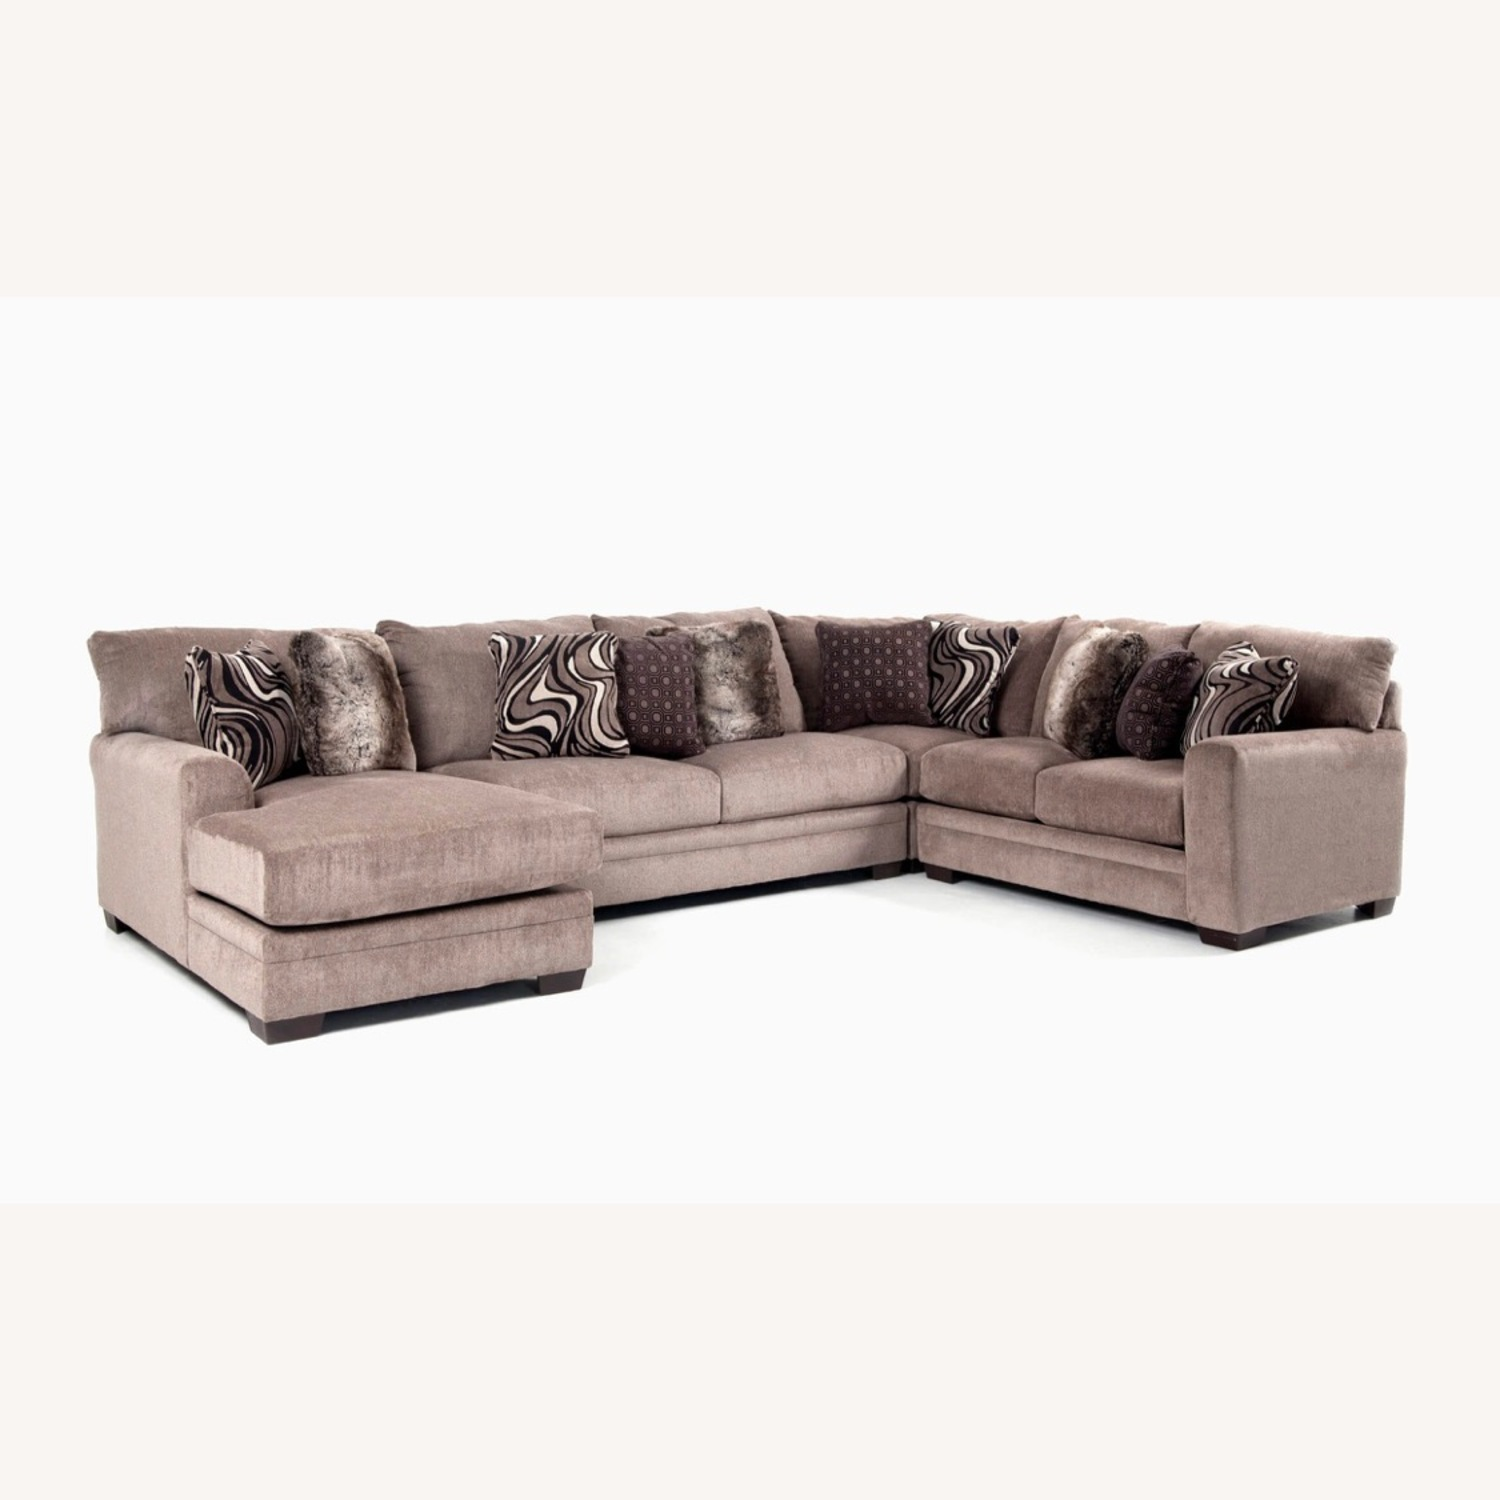 Bob's Discount Furniture Luxe Sectional - image-2